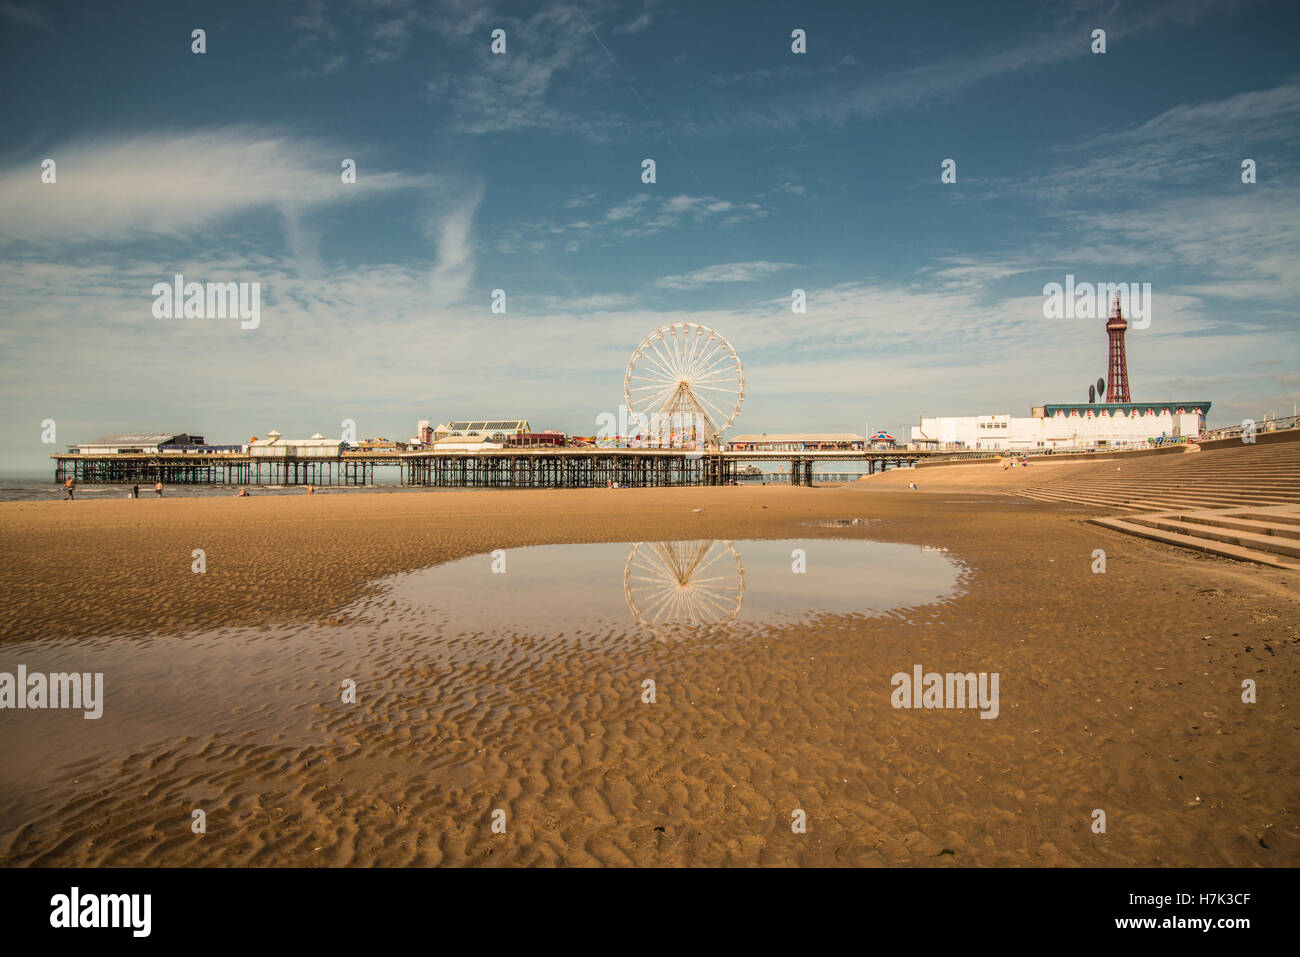 looking out to Blackpool by the sea Ray Boswell - Stock Image